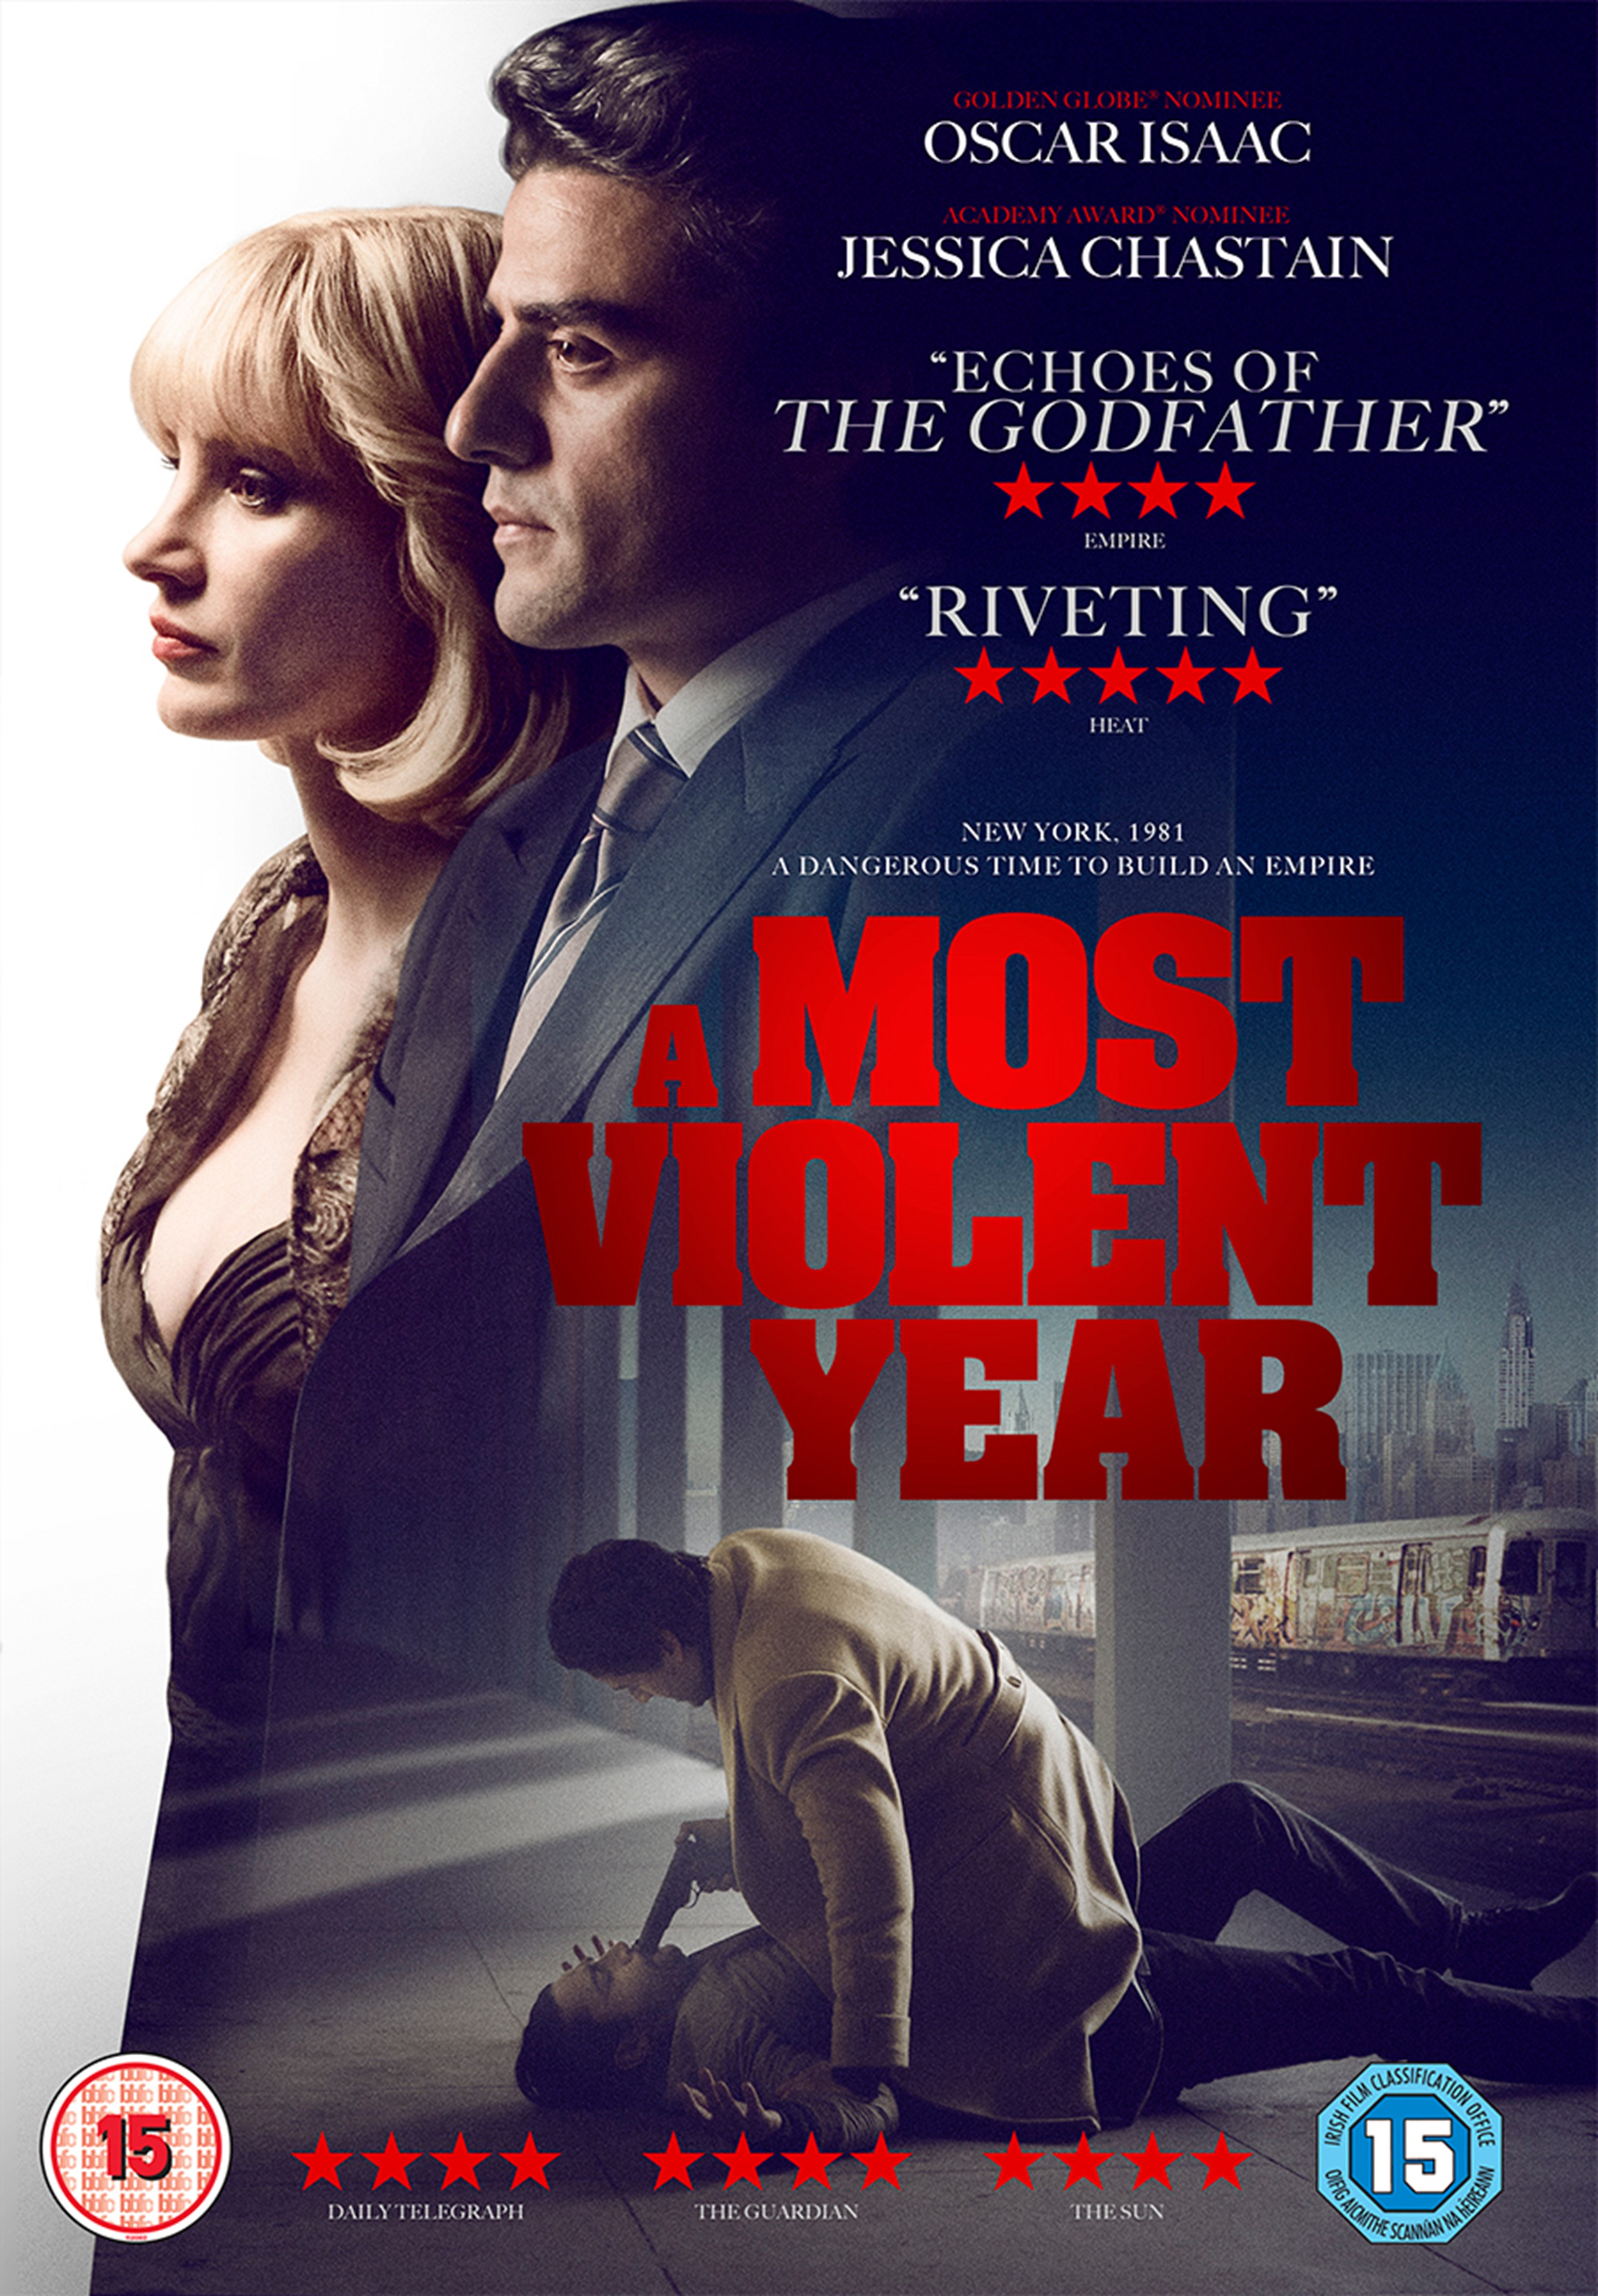 A Most Violent Year - 1